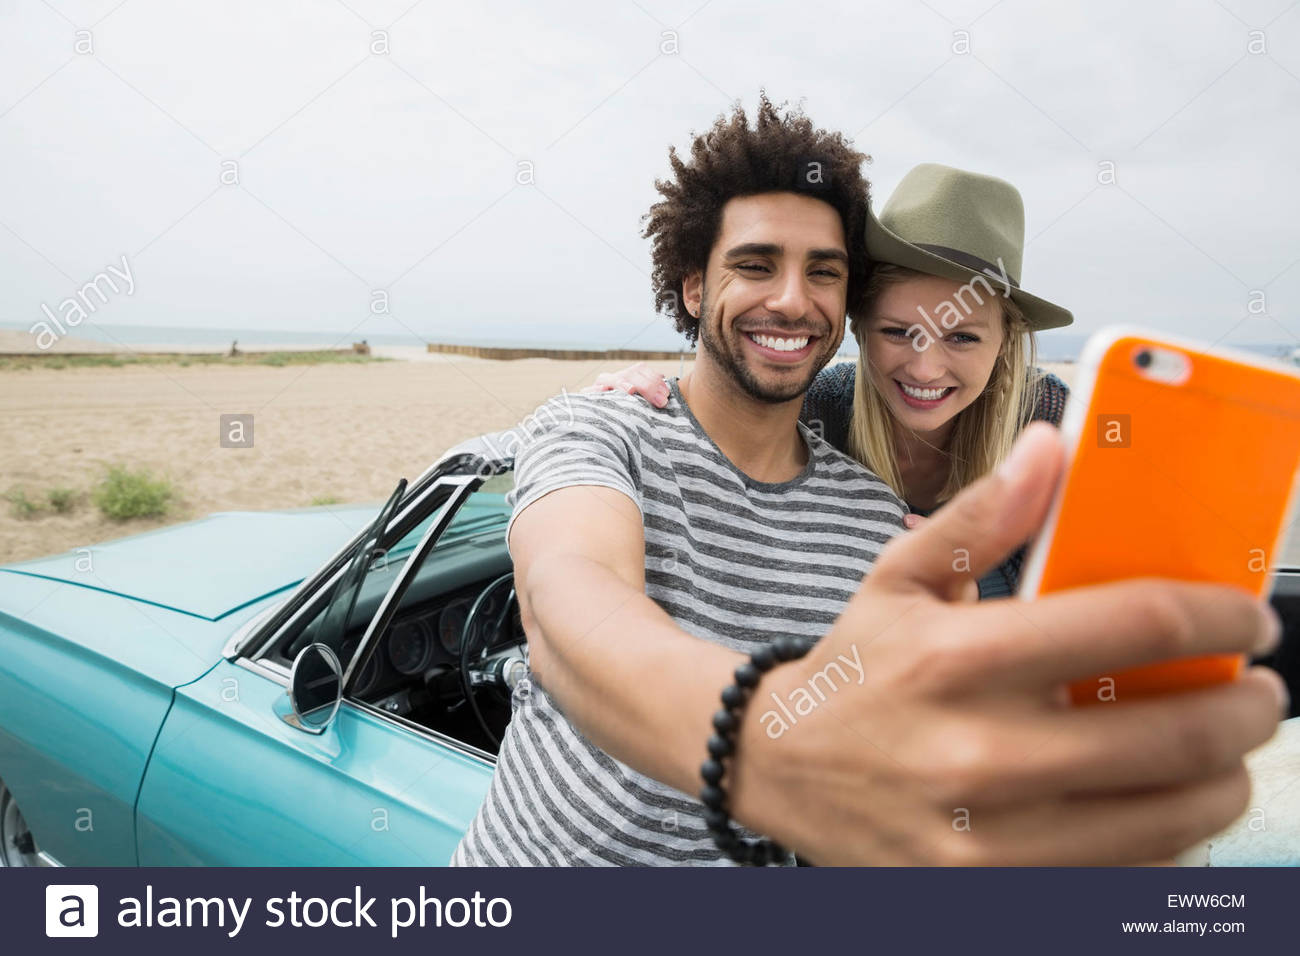 Young couple in convertible selfies at beach Photo Stock